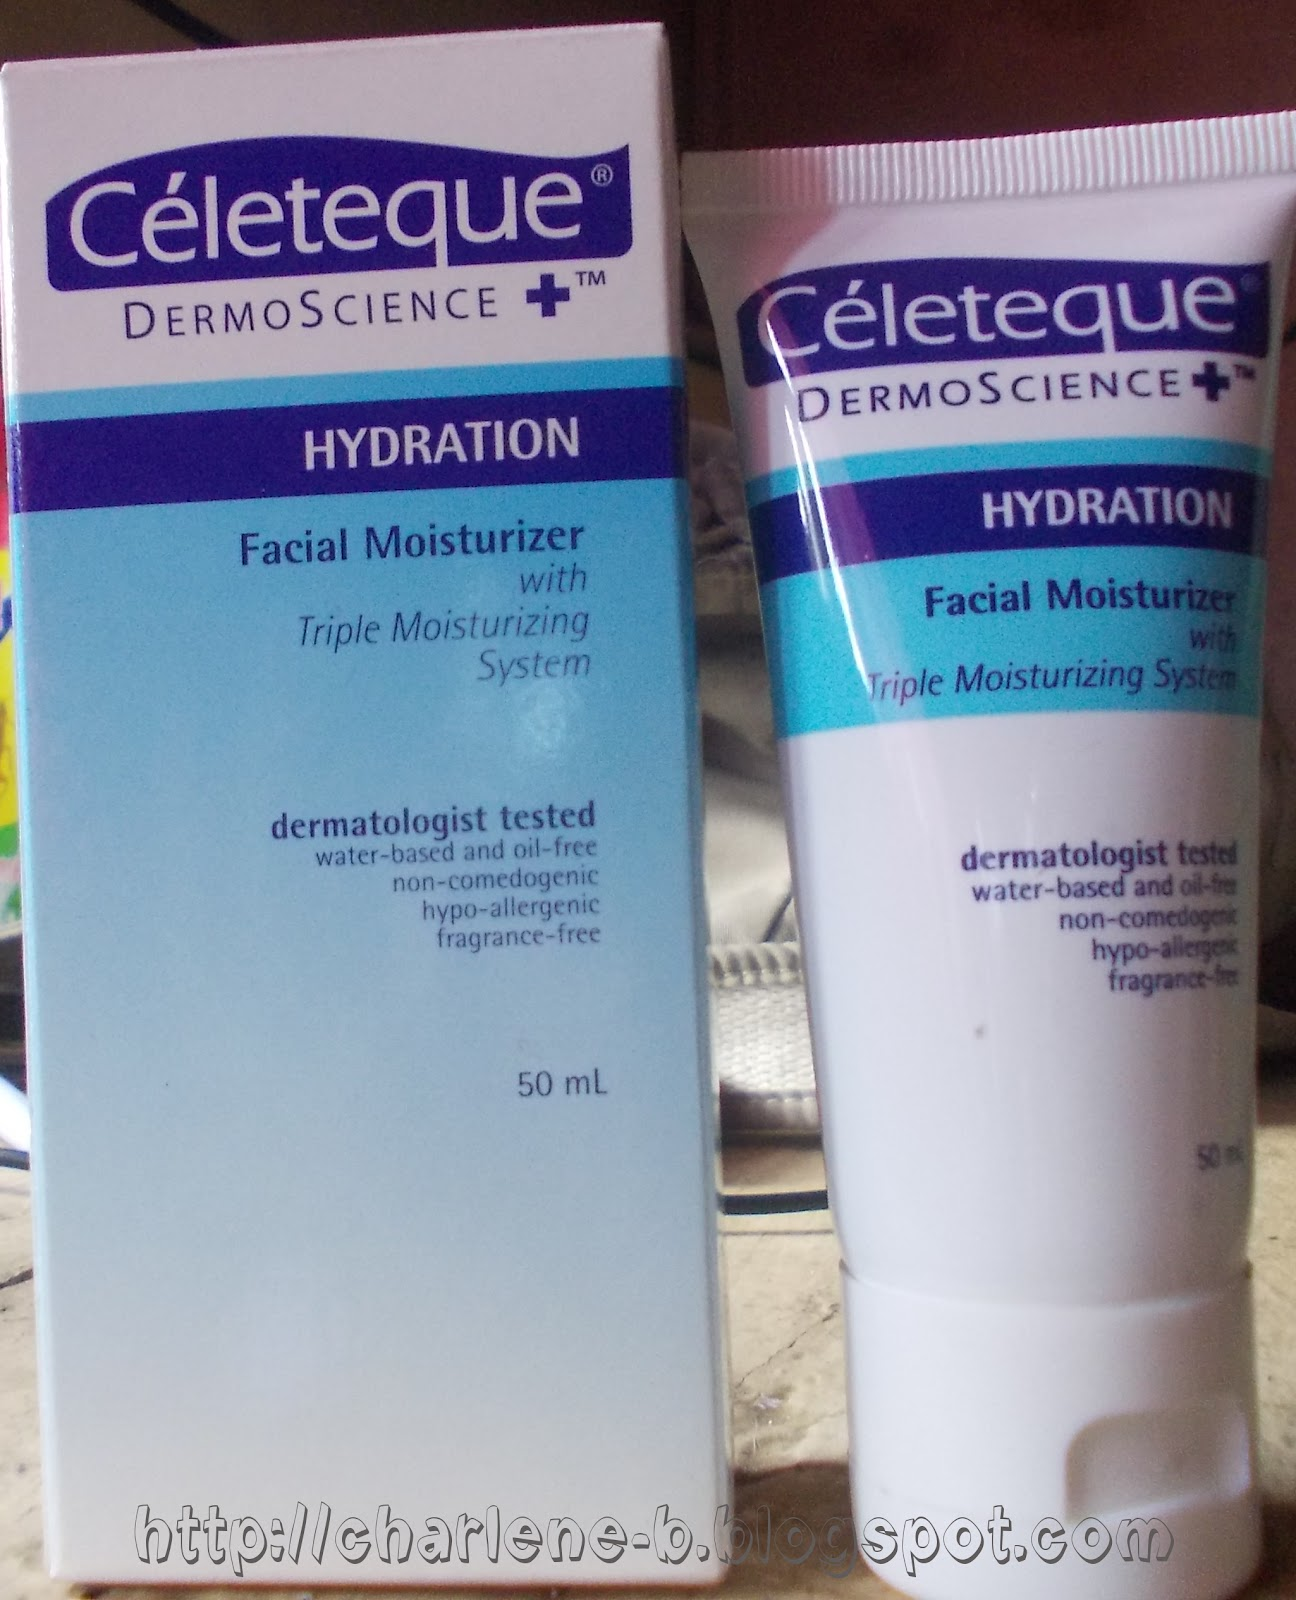 Uncharted Plans Celeteque Dermoscience Hydration Facial Moisturizer